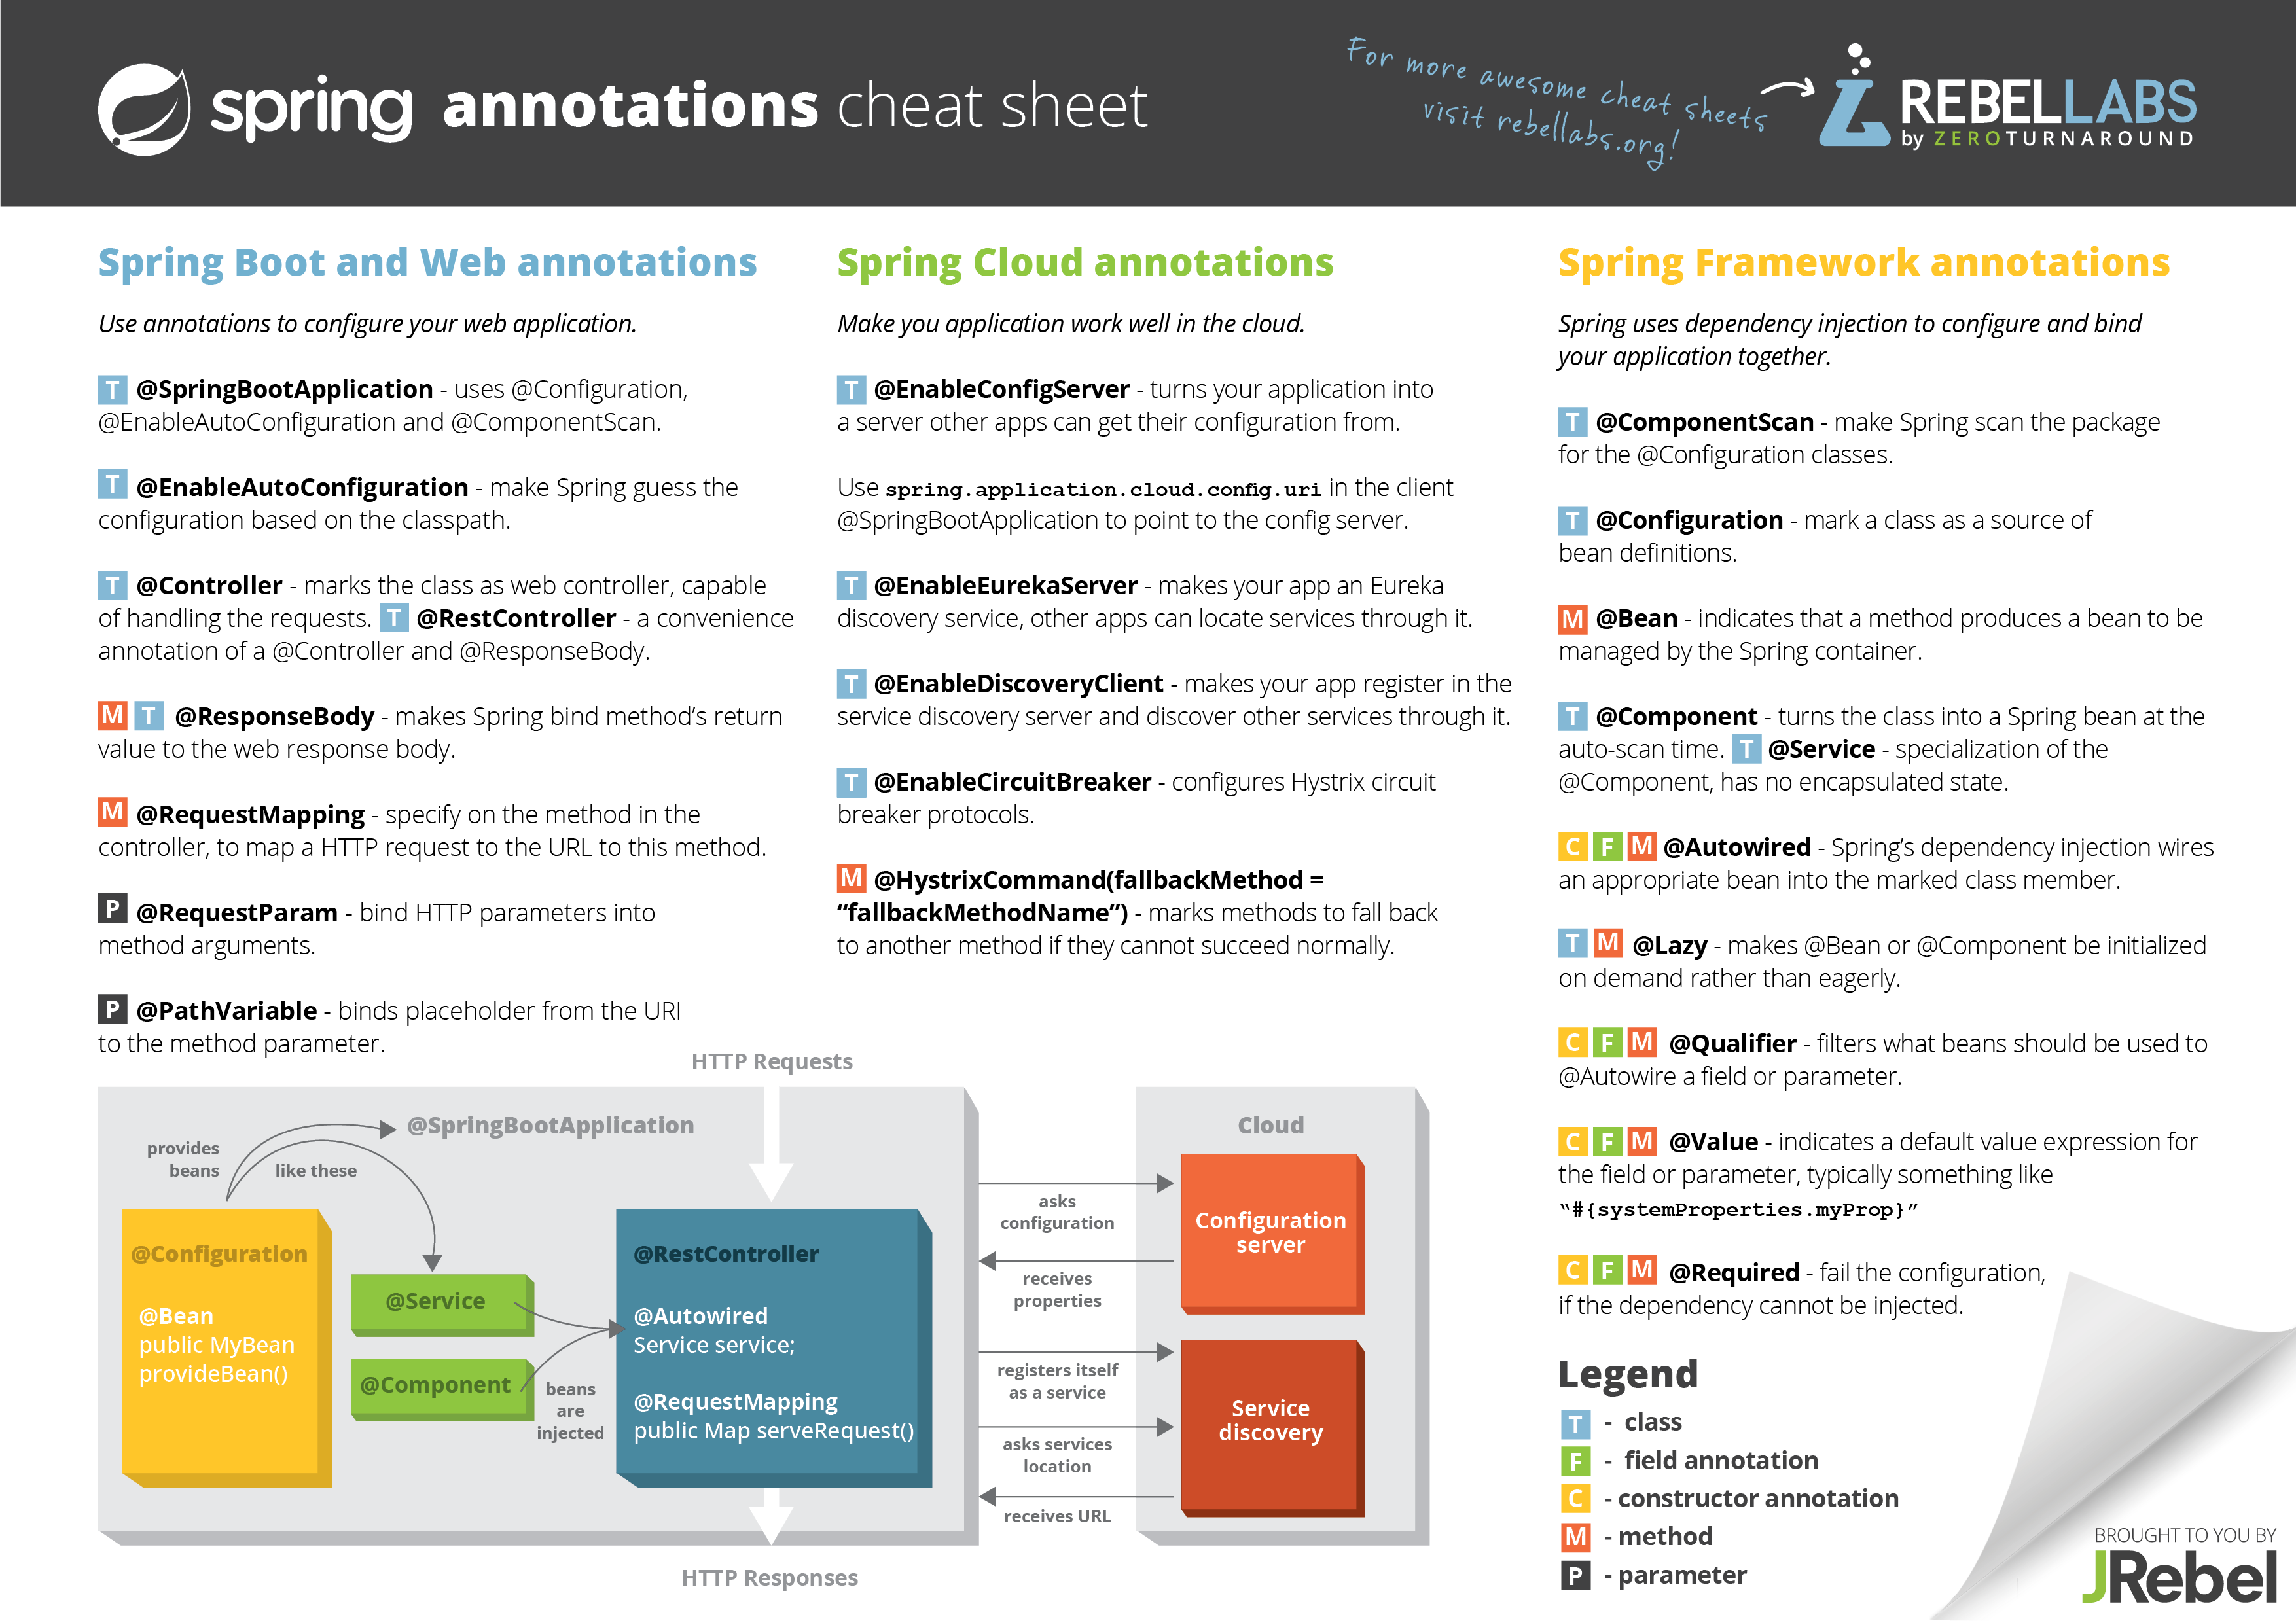 rebellabs-spring-annotations-cheat-sheet